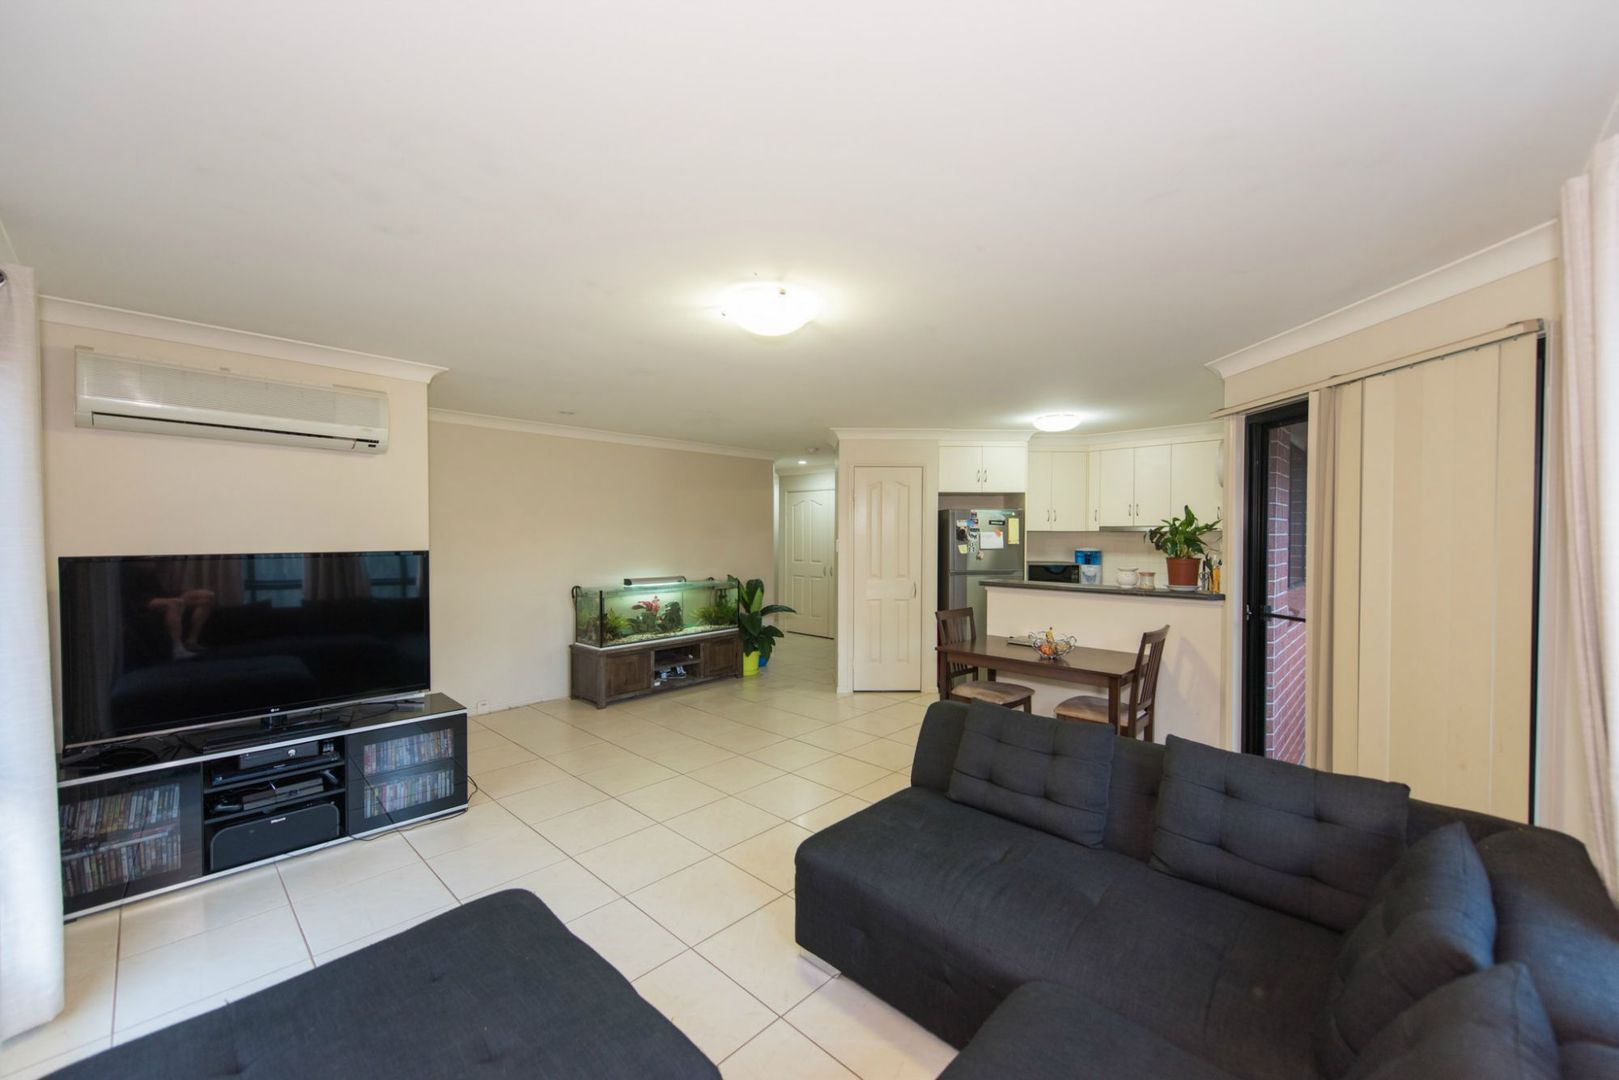 1/15 Gorman Street, Darling Heights QLD 4350, Image 2